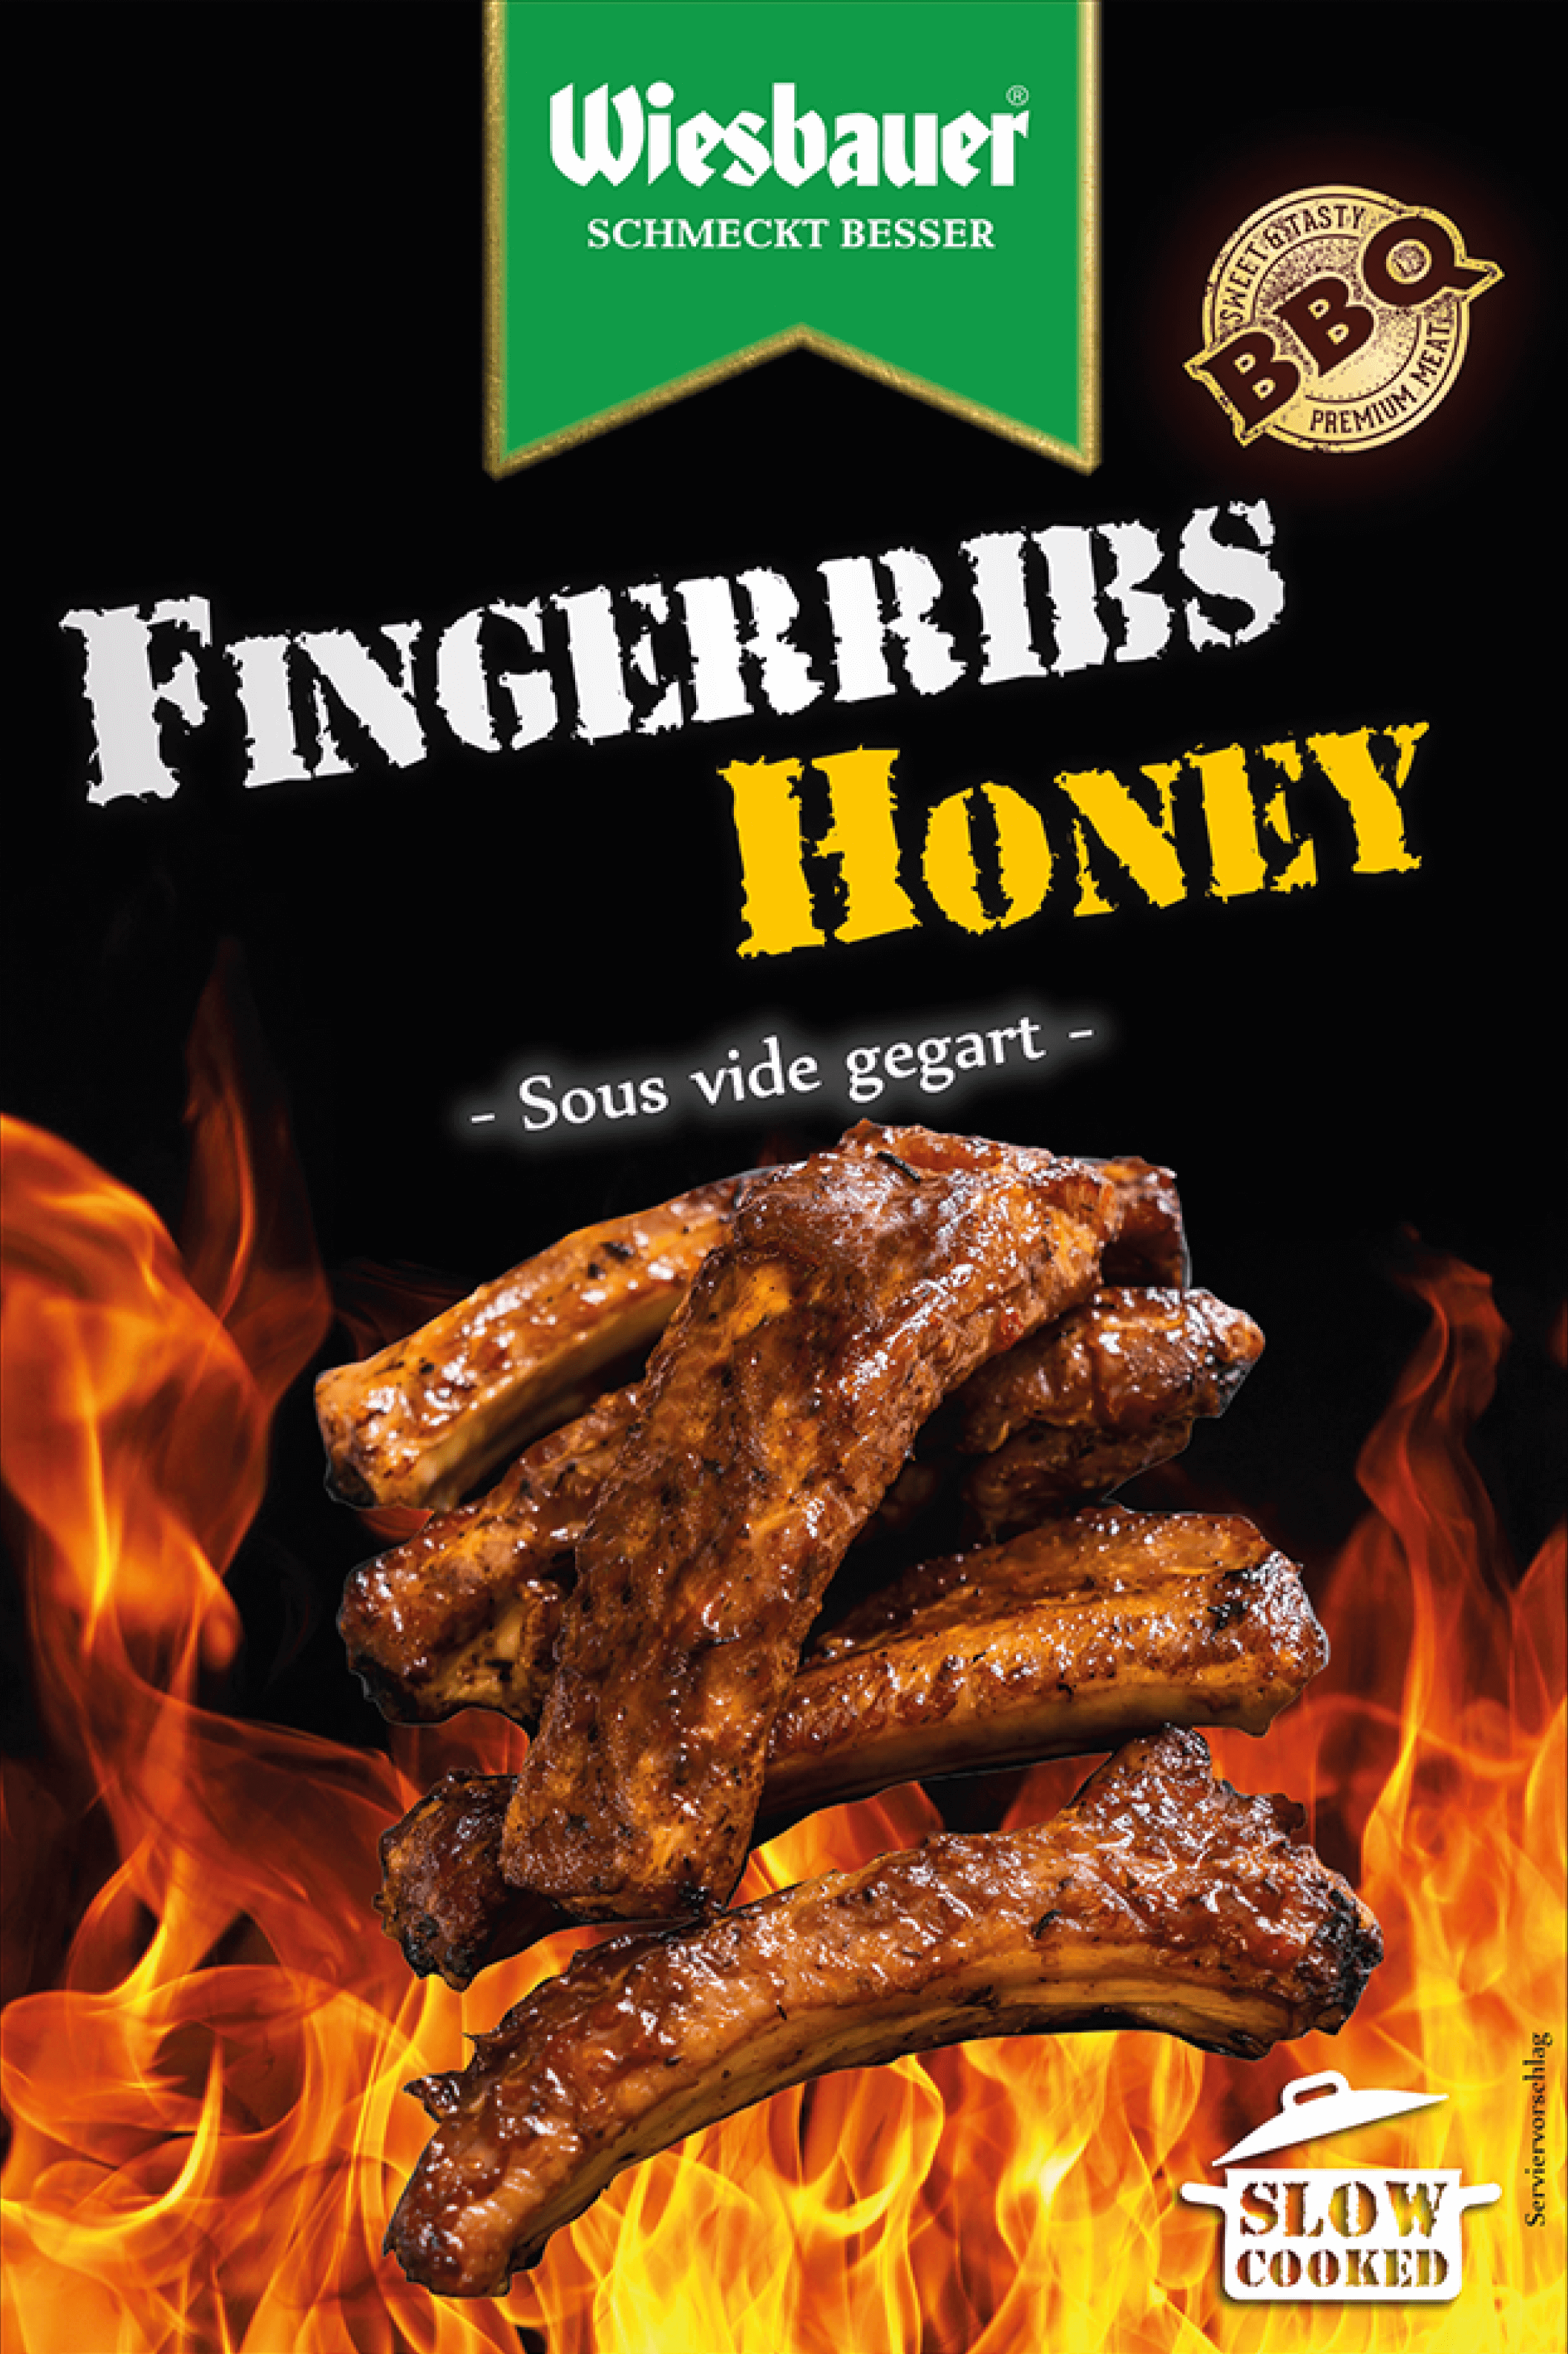 BBQ Fingerribs Honey